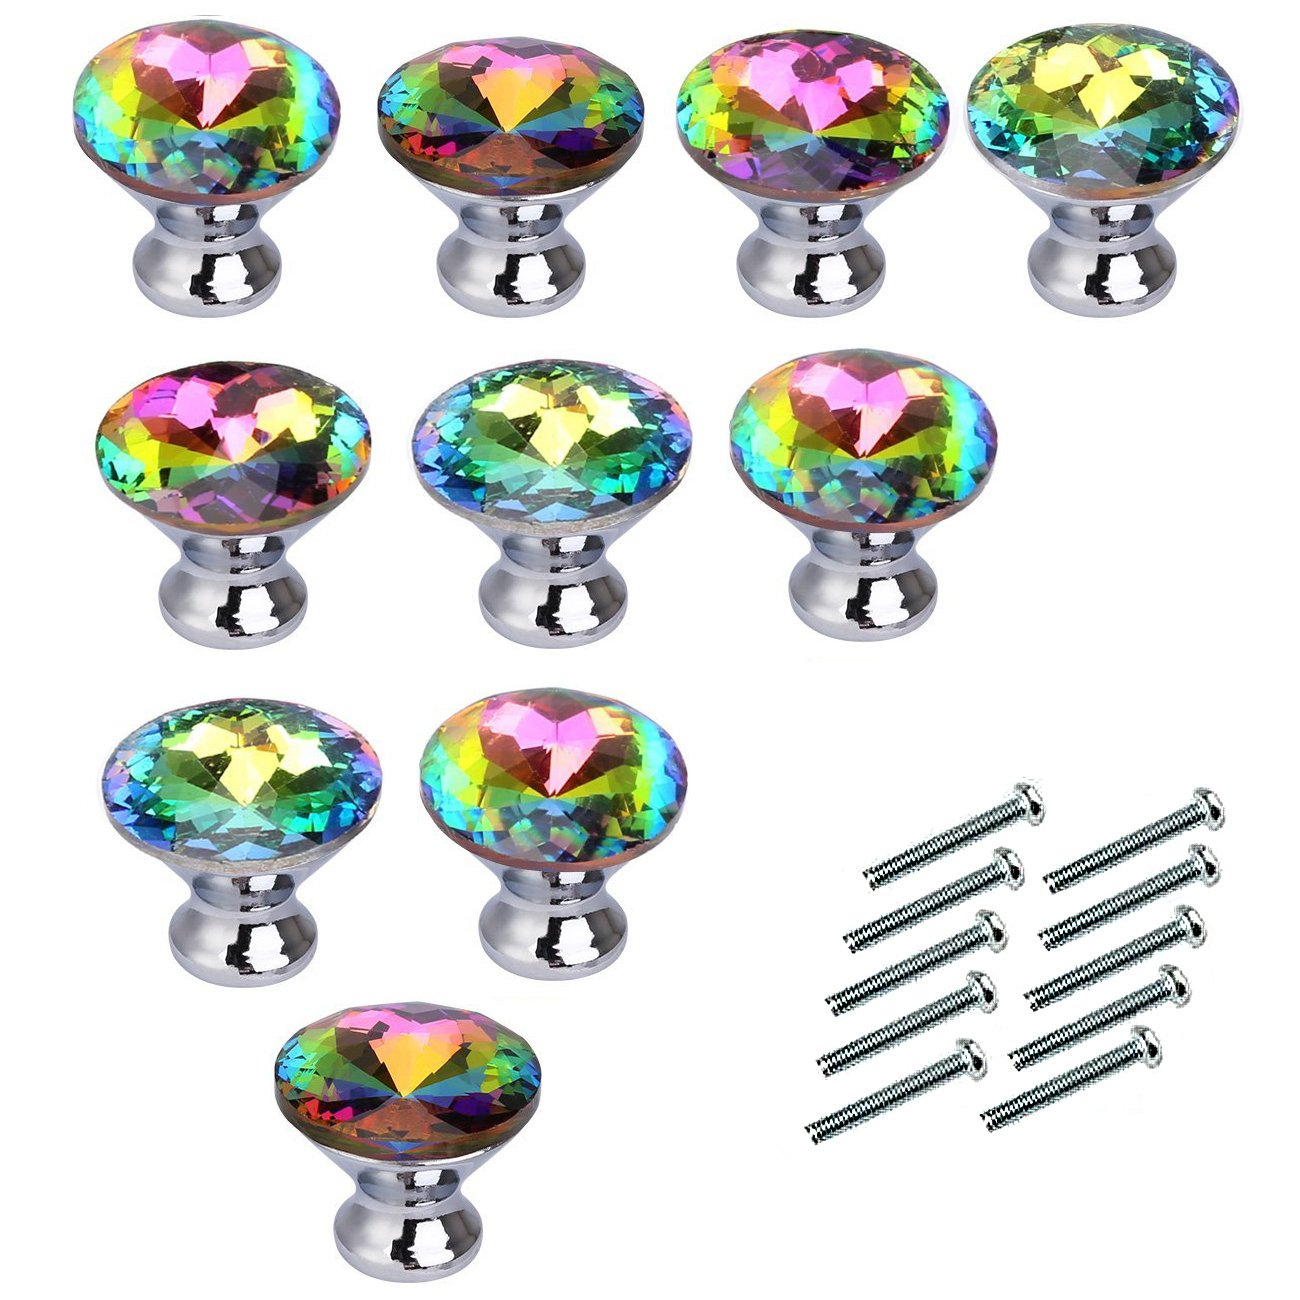 DASTAR™ Colorful Crystal Glass Cupboard Wardrobe Cabinet Drawer Knob Door Pull Handles-Pack of 10 by Generic